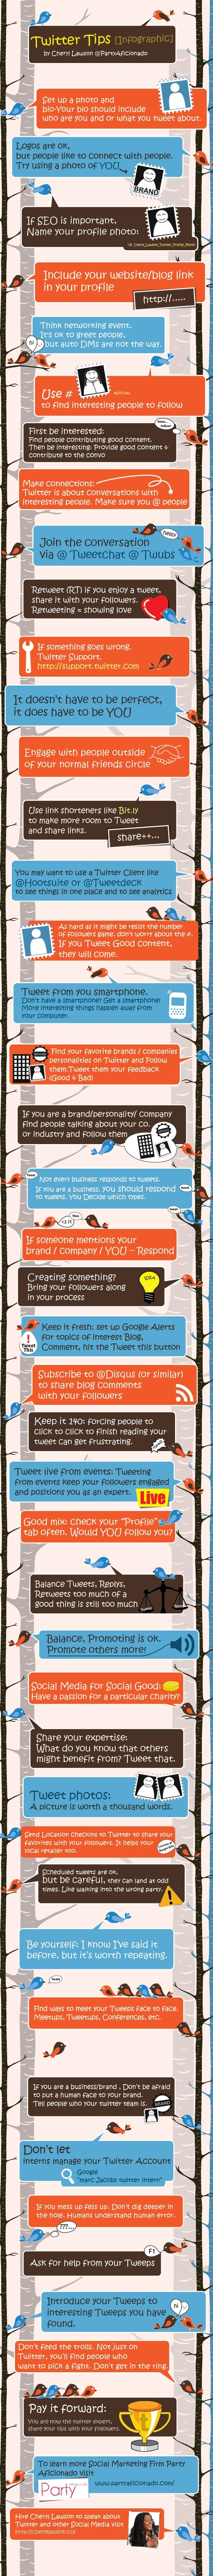 Twitter Tips (Infographic)